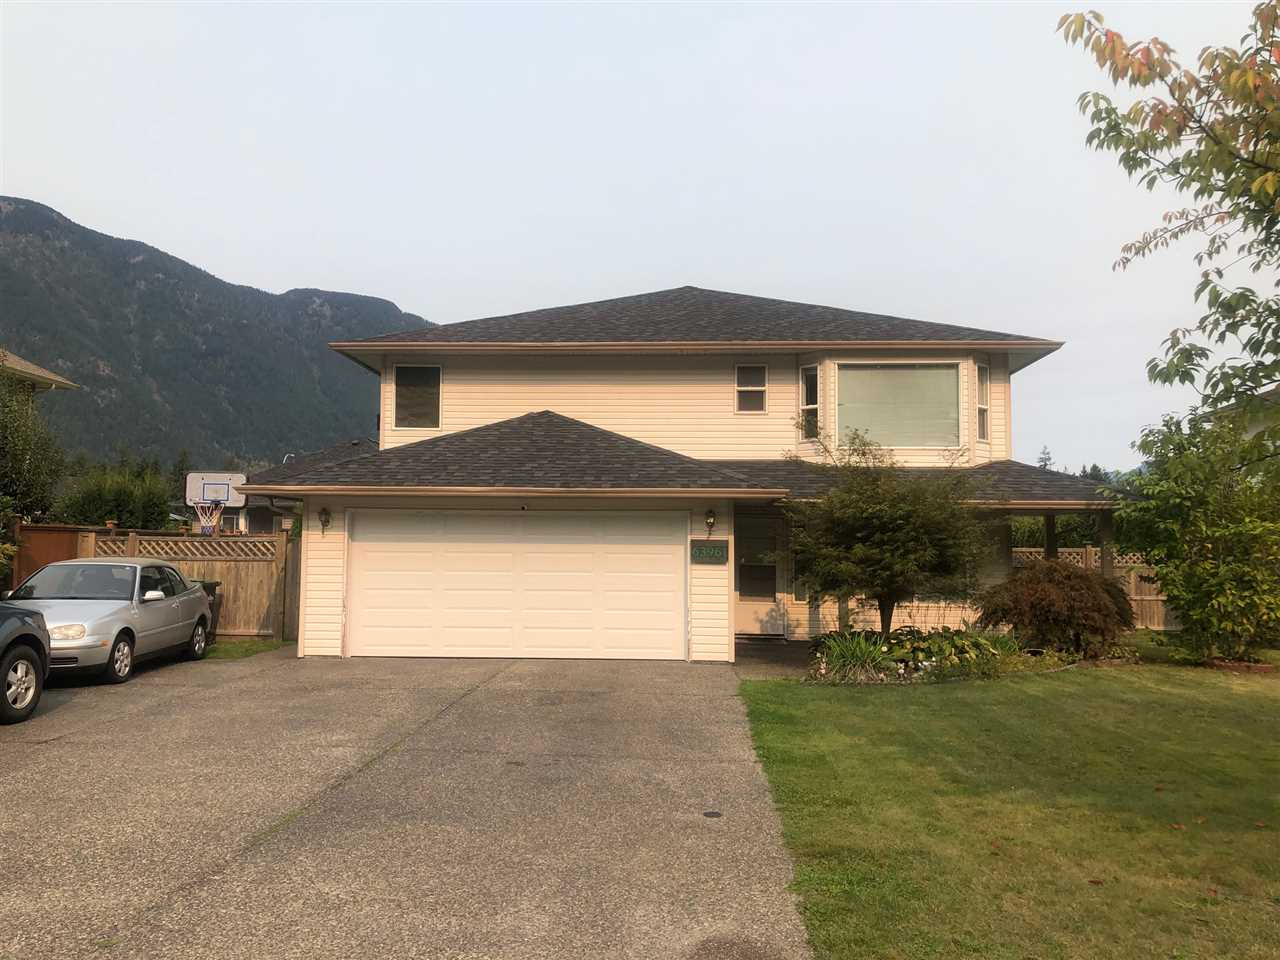 63961 EDWARDS DRIVE - Hope Silver Creek House/Single Family for sale, 4 Bedrooms (R2502616) - #1